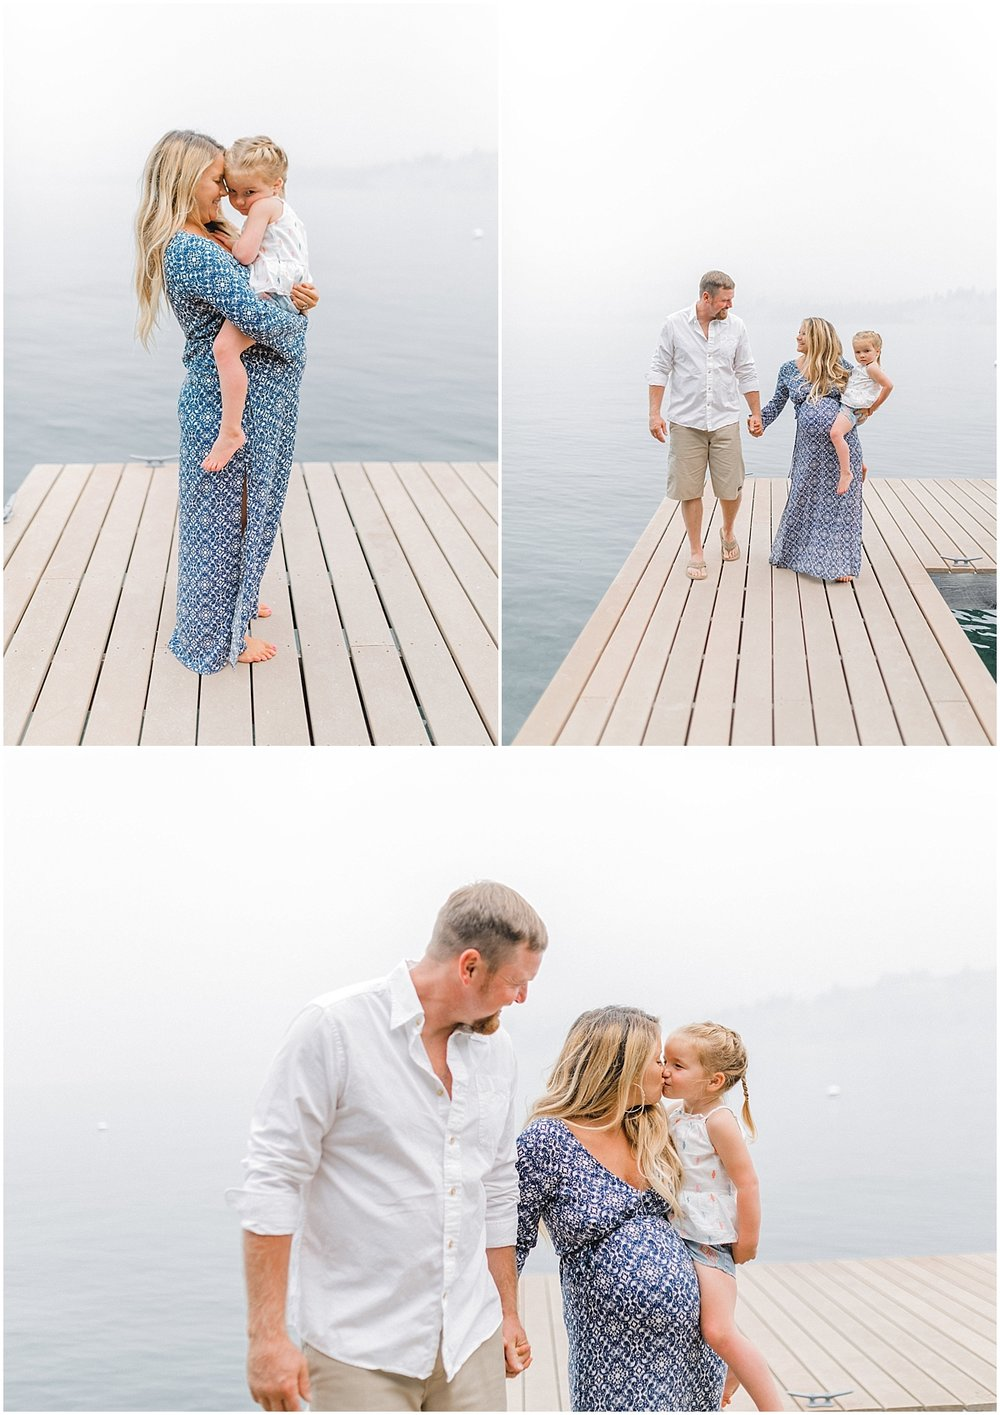 Emma Rose Company | PNW Family Portrait Photographer | Light and Airy Photography Style | What to Wear to Family Pictures | Kindred Presets | Lake Chelan Wedding Portrait Photographer_0104.jpg